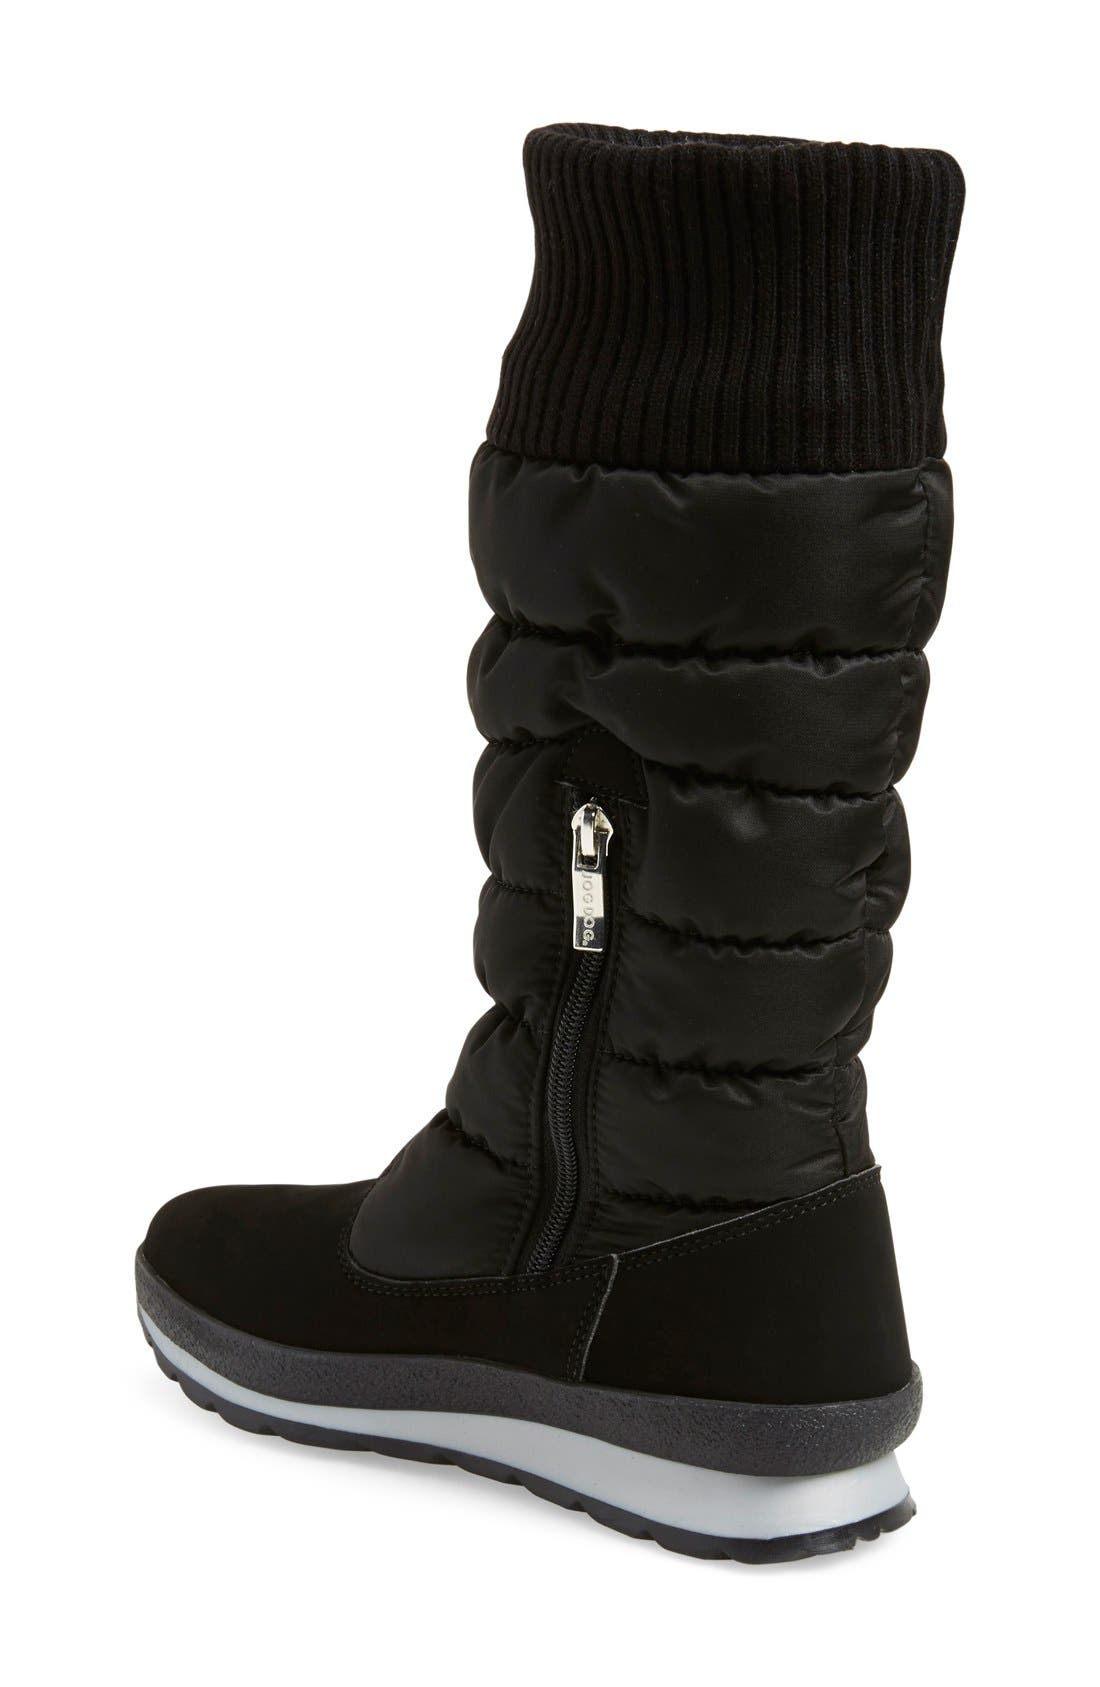 St. Anton Waterproof Winter Boot,                             Alternate thumbnail 2, color,                             Black